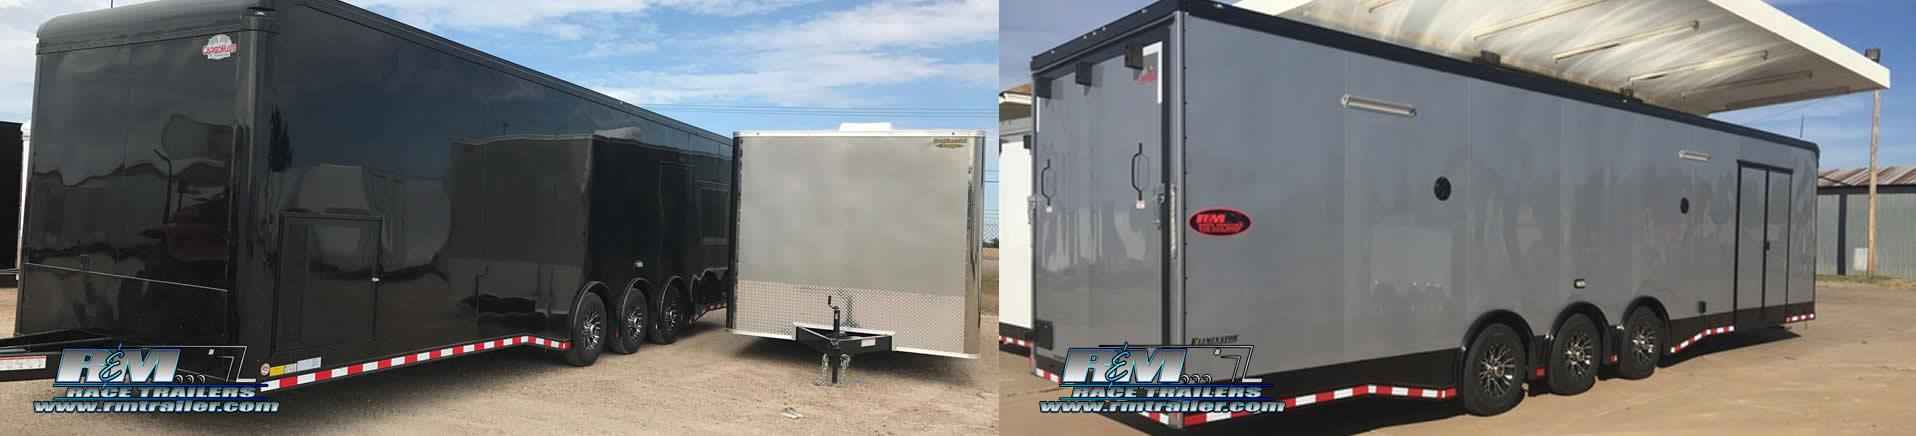 Enclosed Trailers Cargo Concession Trailersmotorcycle Wells Trailer Wiring Diagram View Inventory